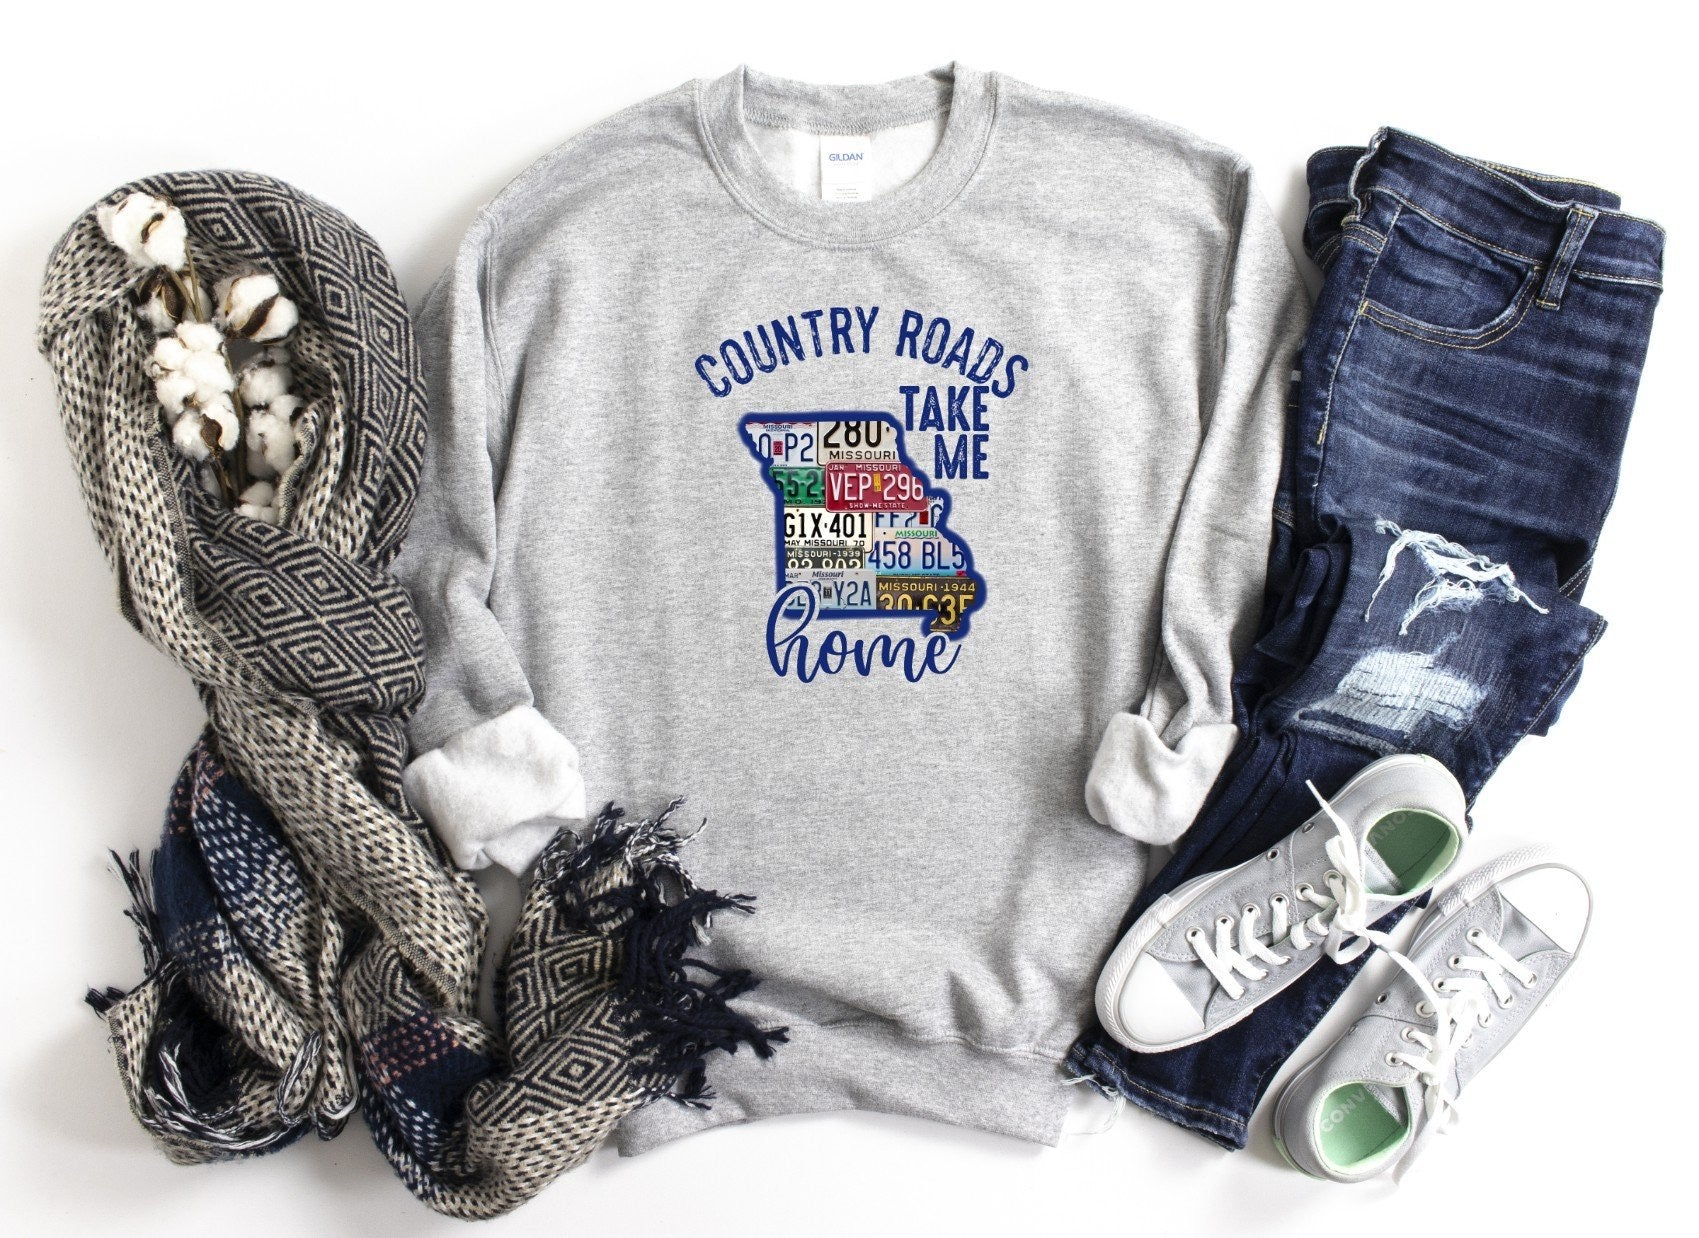 Country Roads Take Me Home MO License Plate Sweatshirt or Printed Tee